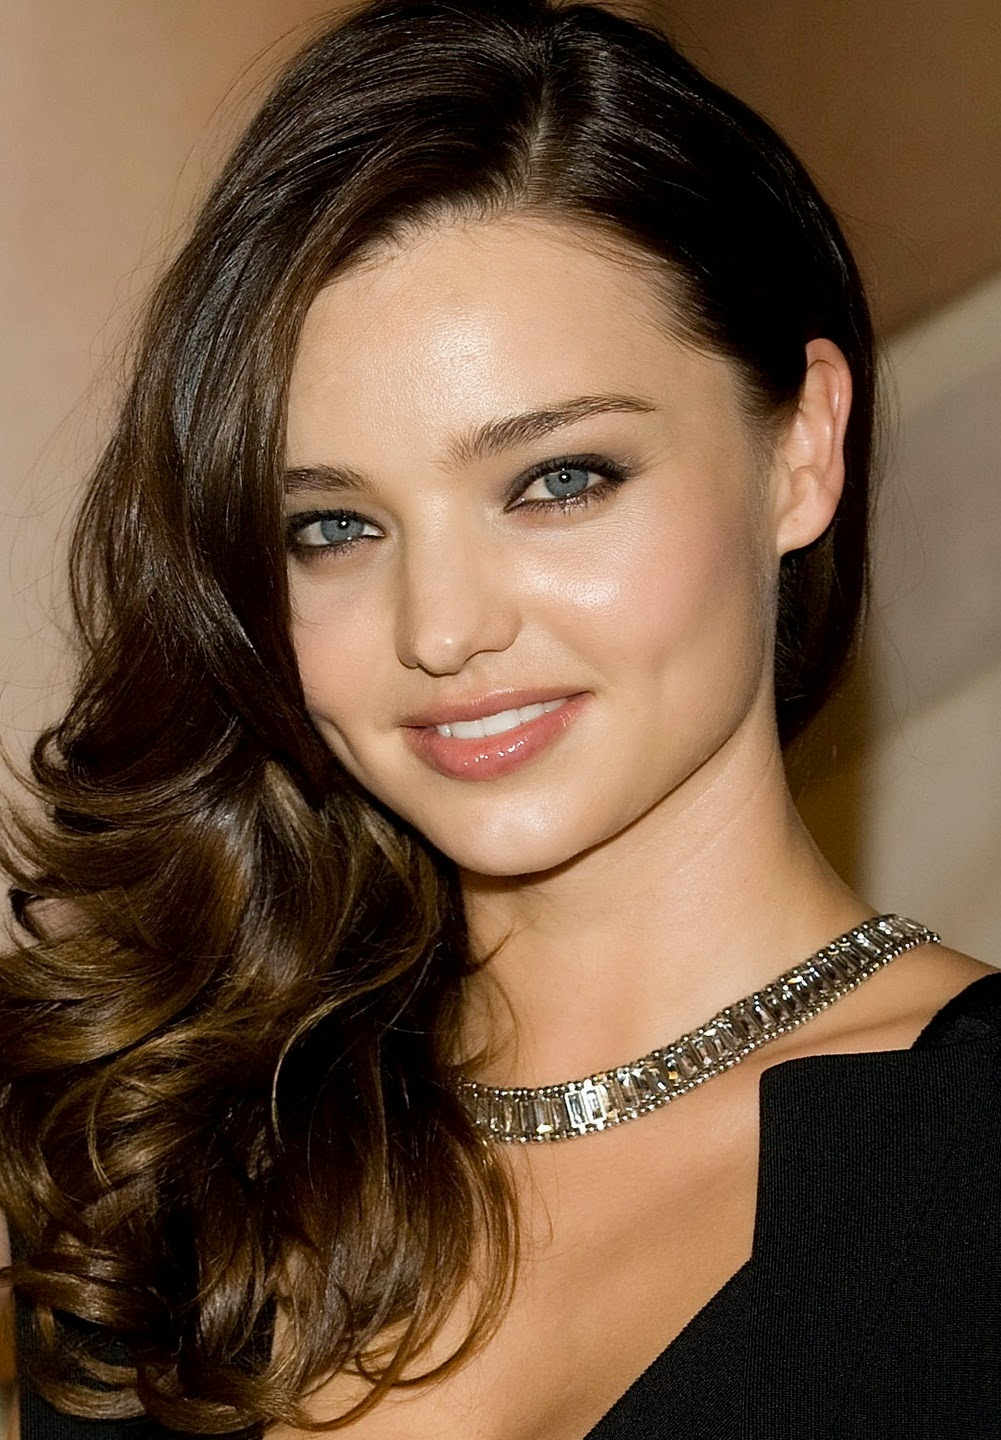 Miranda Kerr S Best Style Looks Ever: Top20femalemodels: August 2014